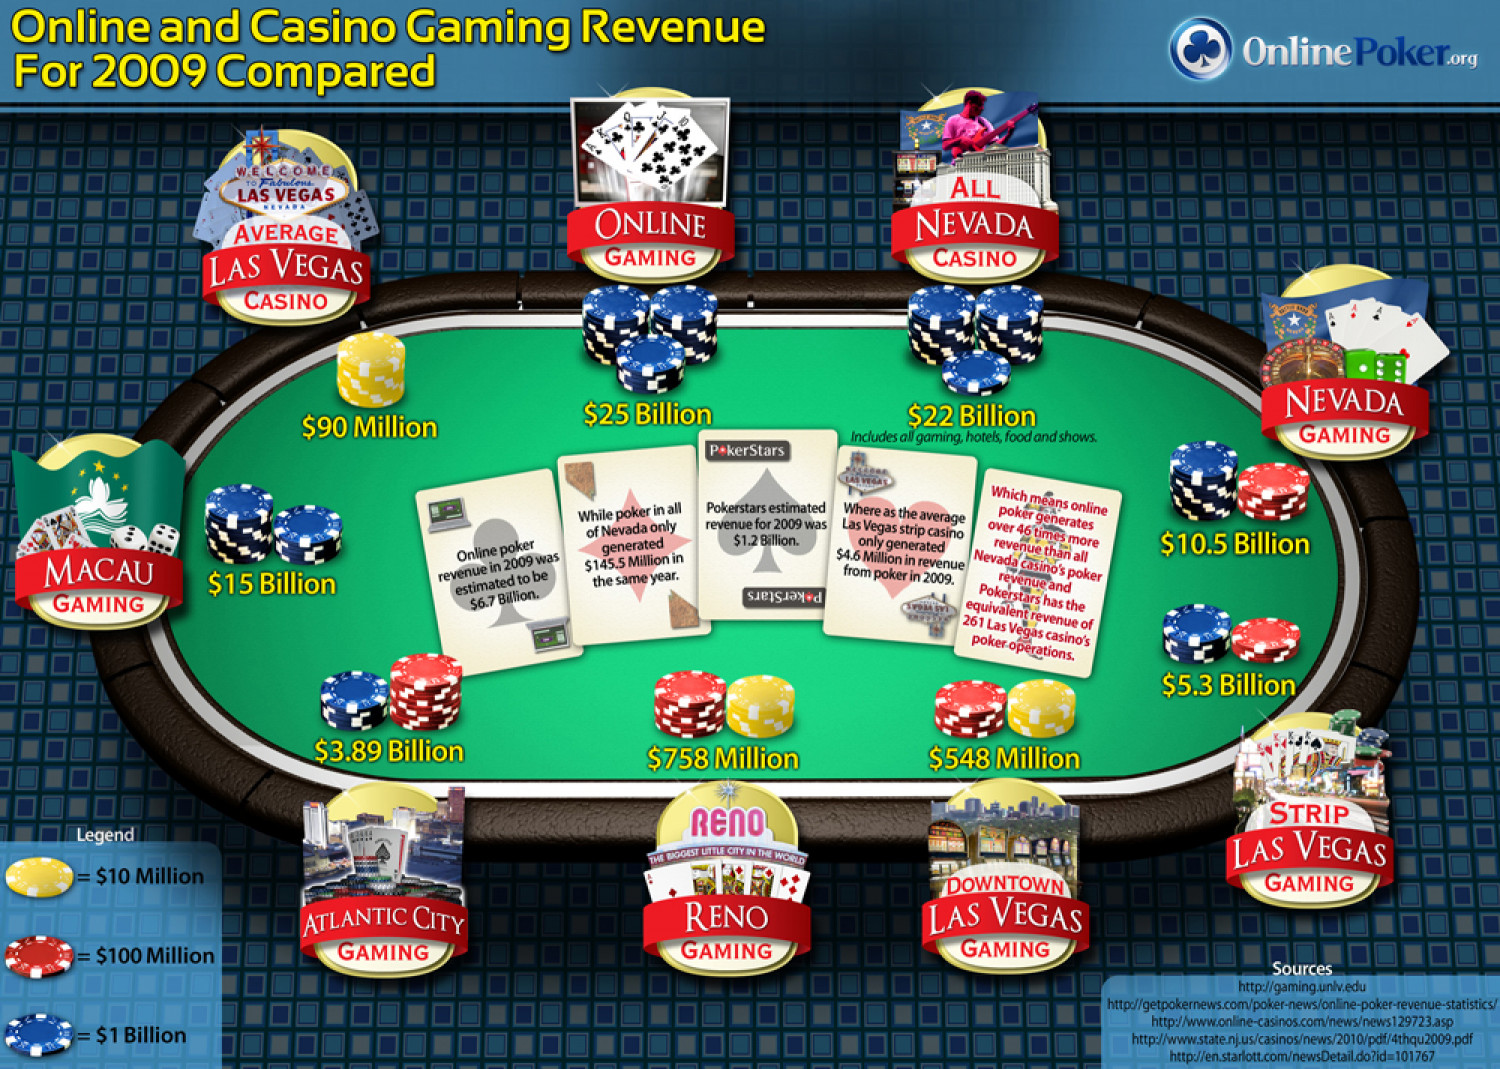 Online and Casino Gaming Revenue Compared Infographic